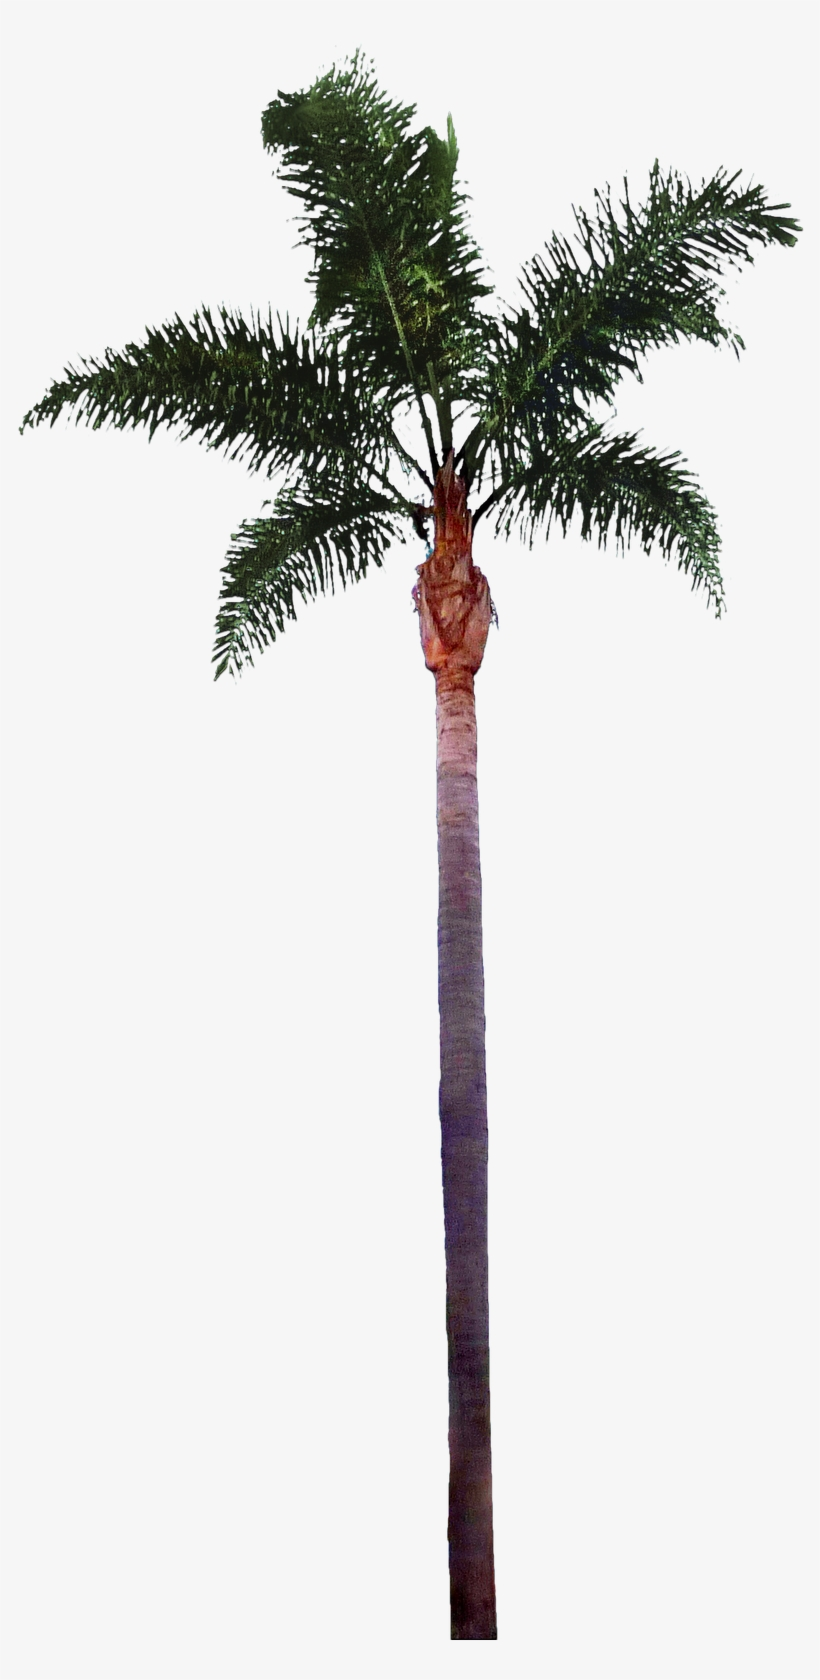 Palm Tree Png File - Palm Tree Trunk Png, transparent png #13464